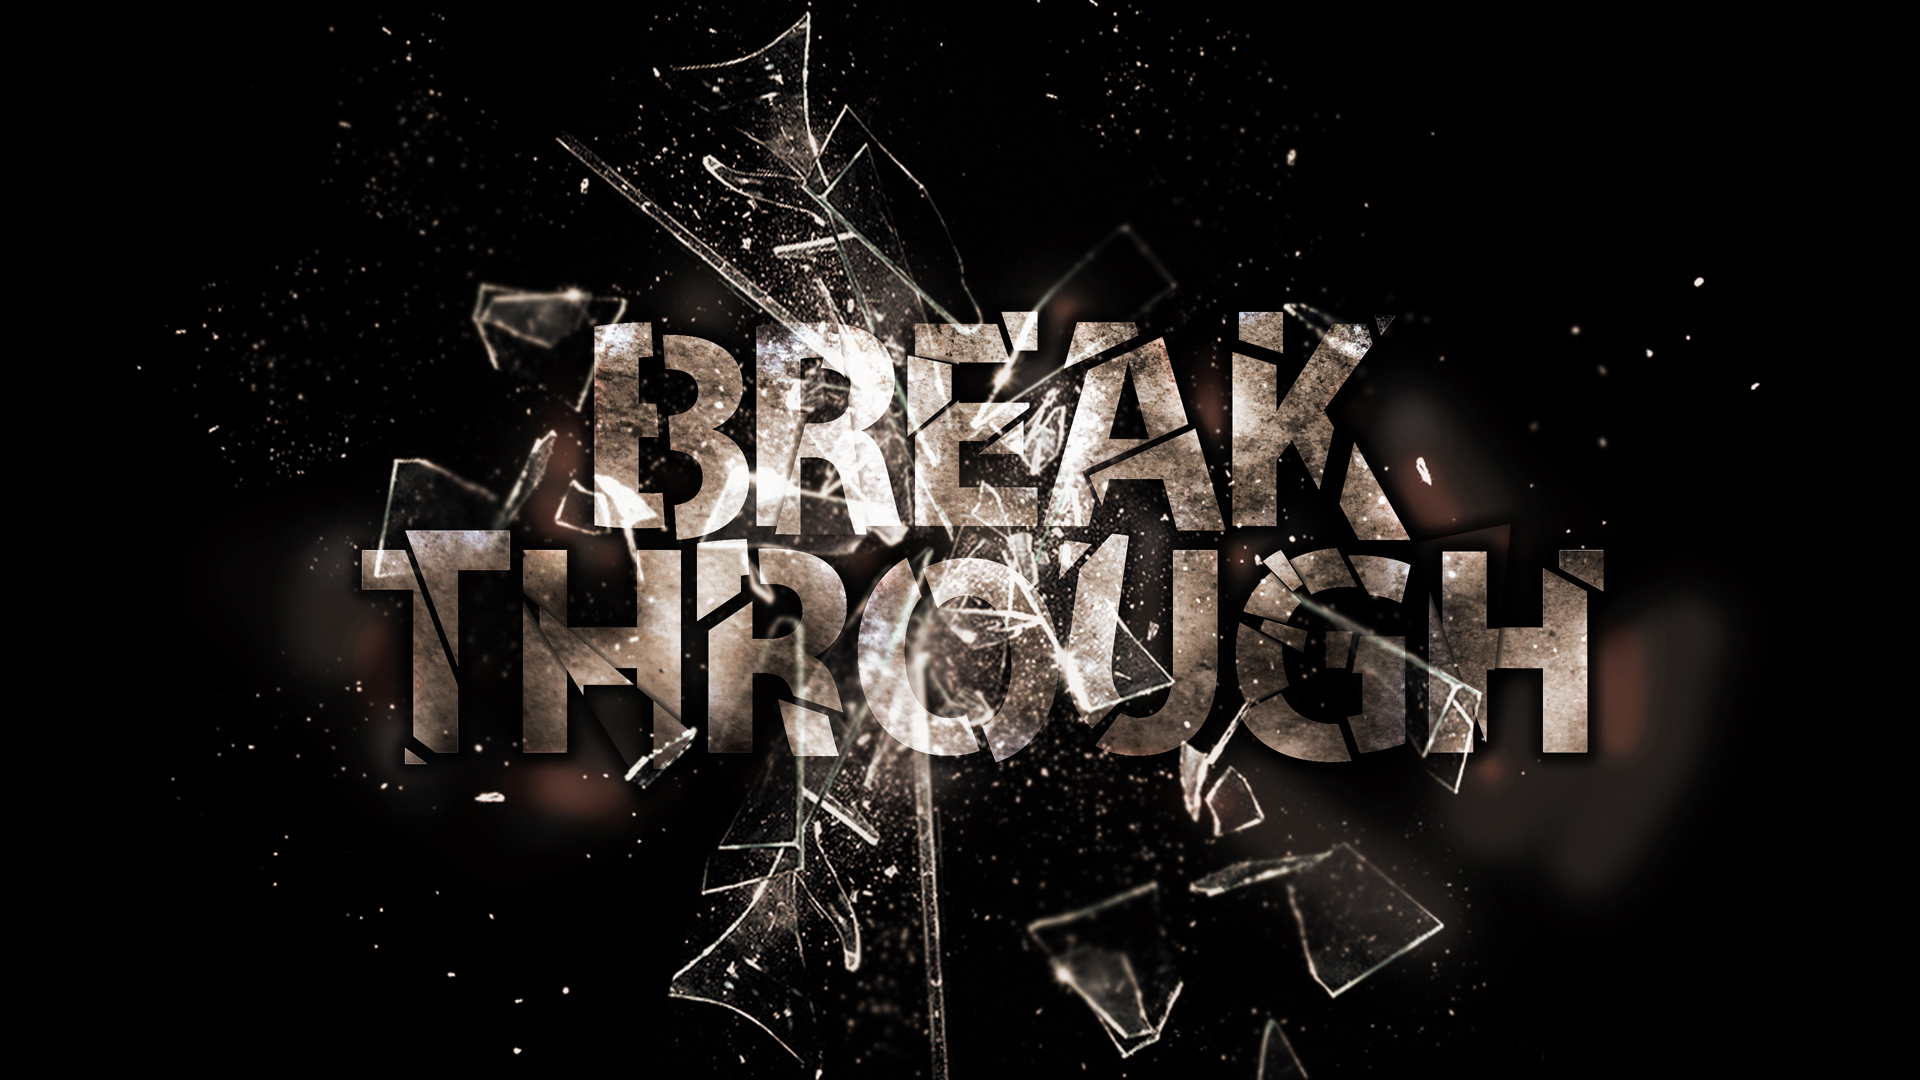 From brokenness to breakthrough